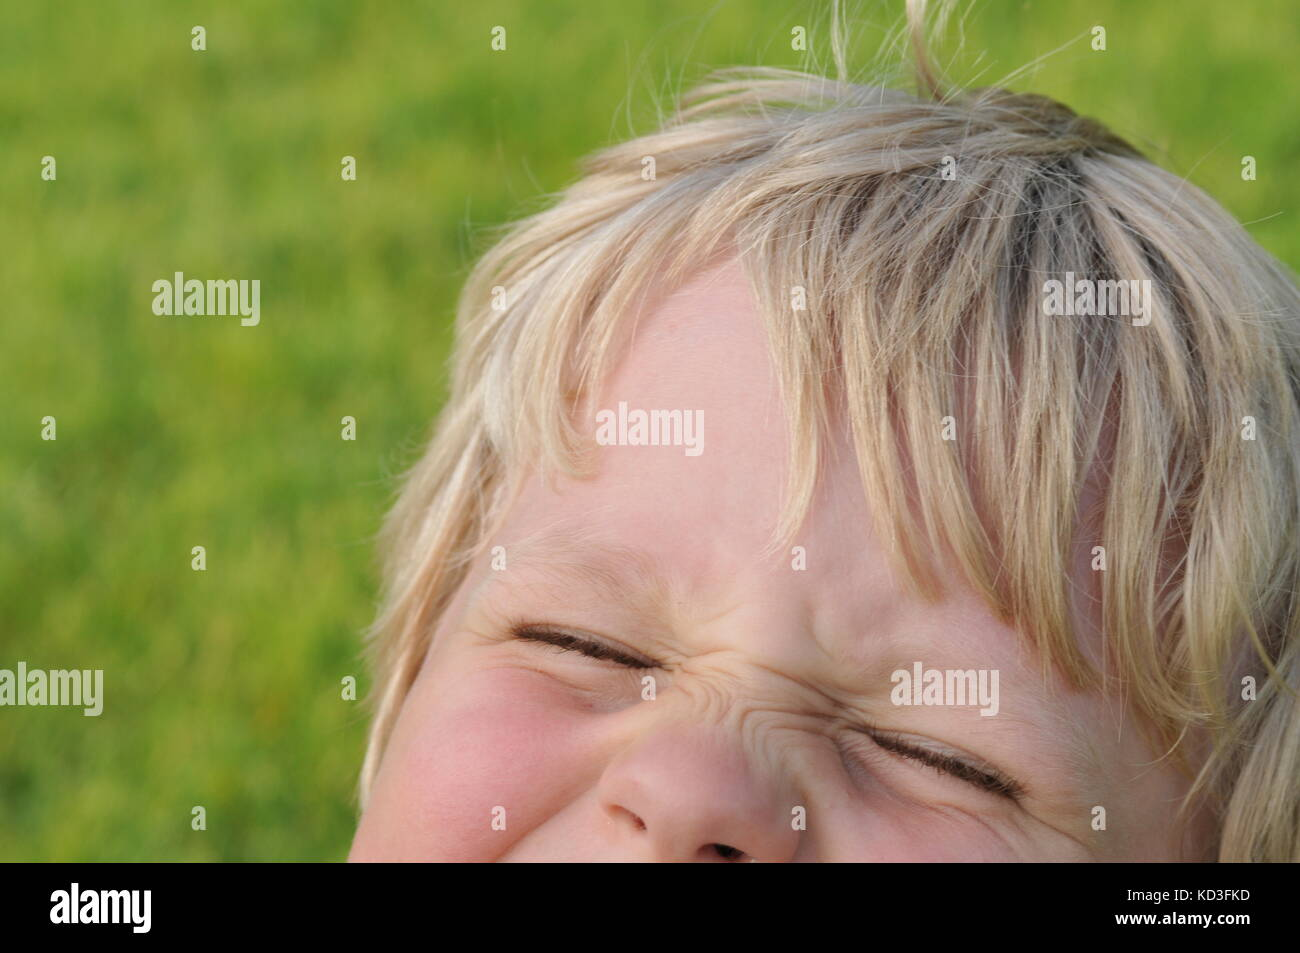 My Son's Glee One Summer - Stock Image